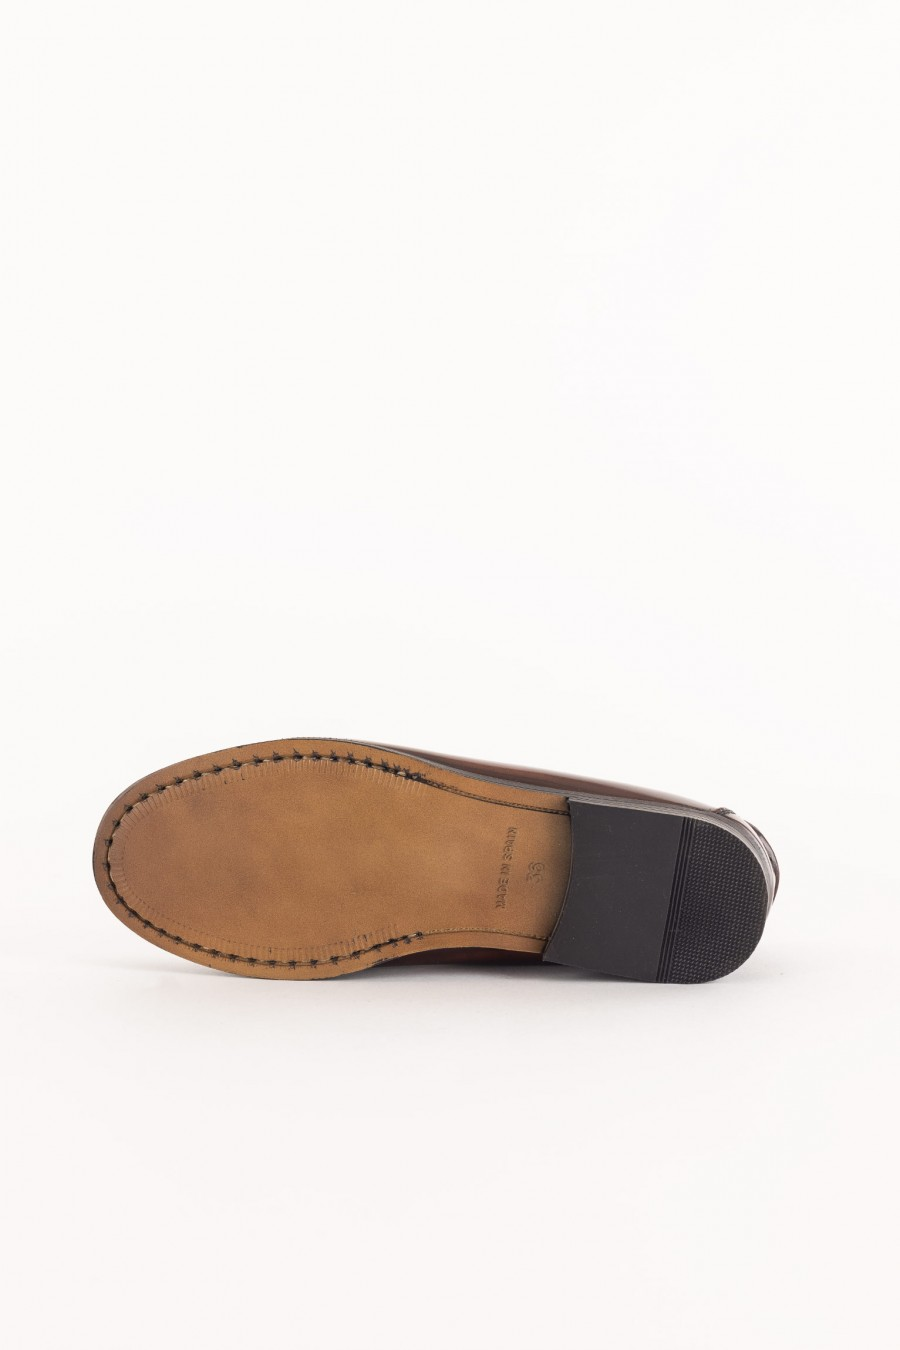 brown polished leather penny loafer